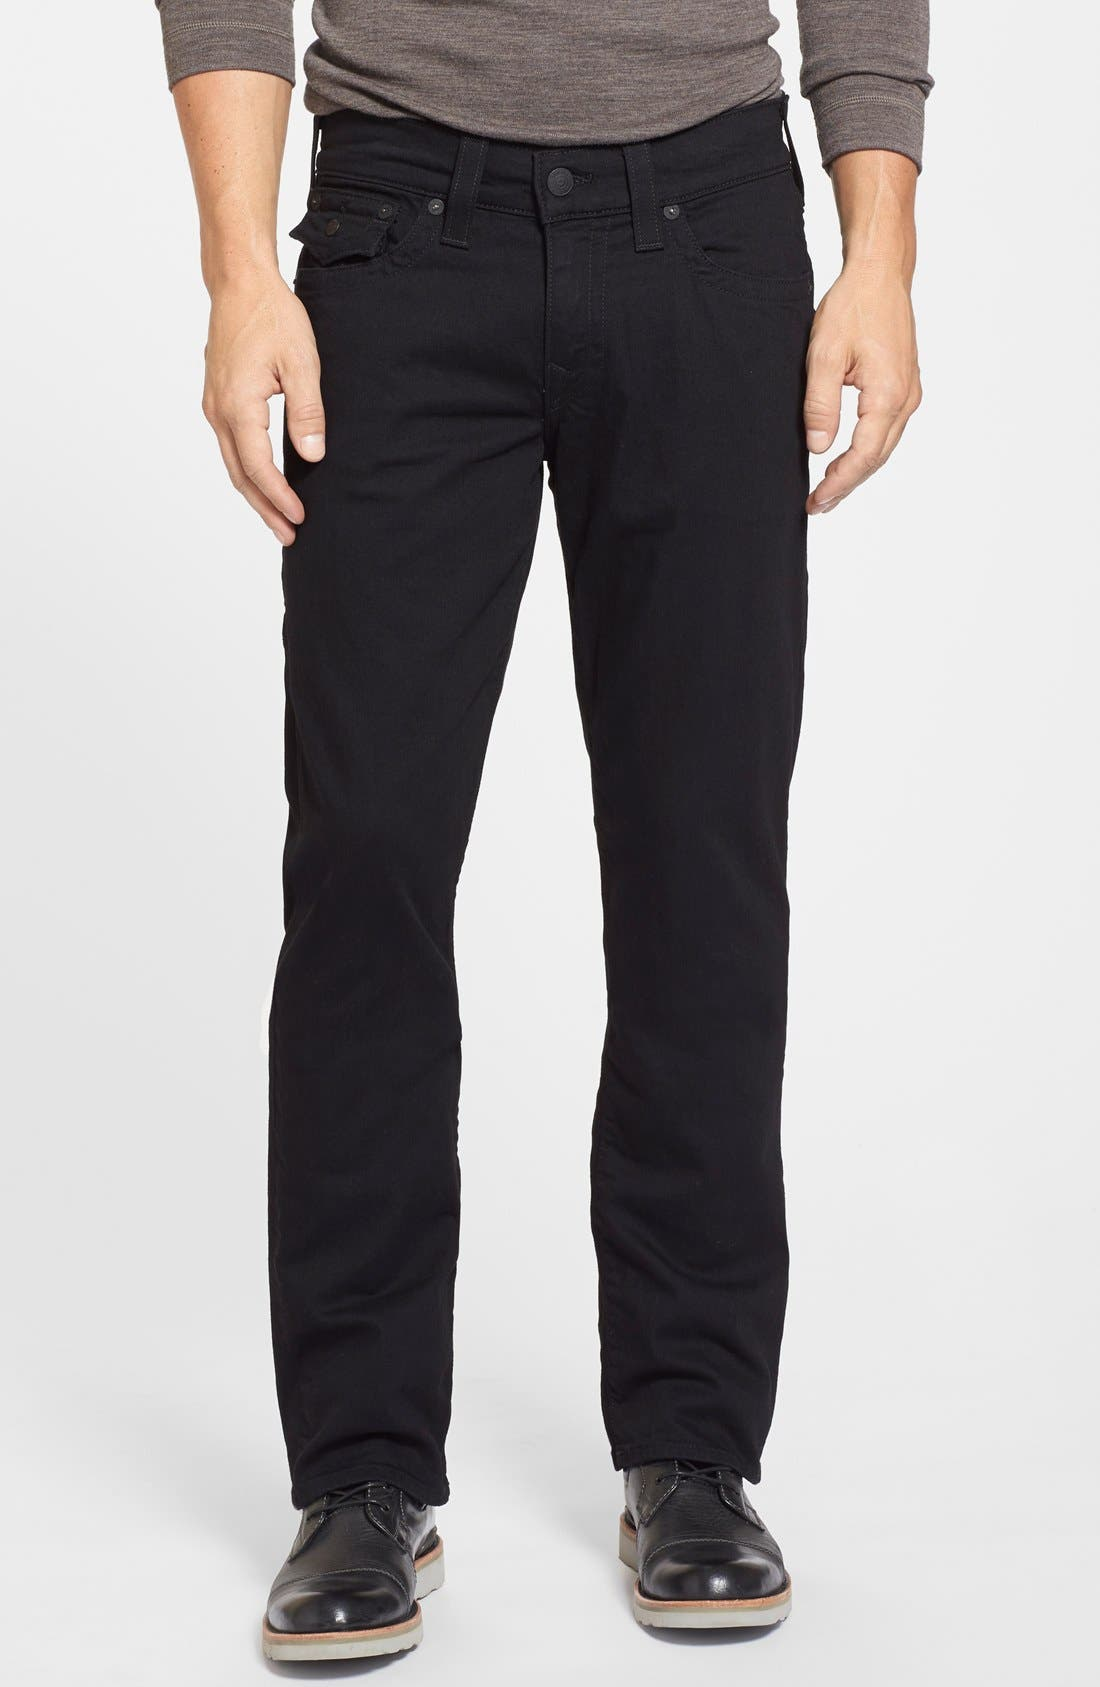 Ricky Relaxed Fit Jeans,                             Main thumbnail 1, color,                             002